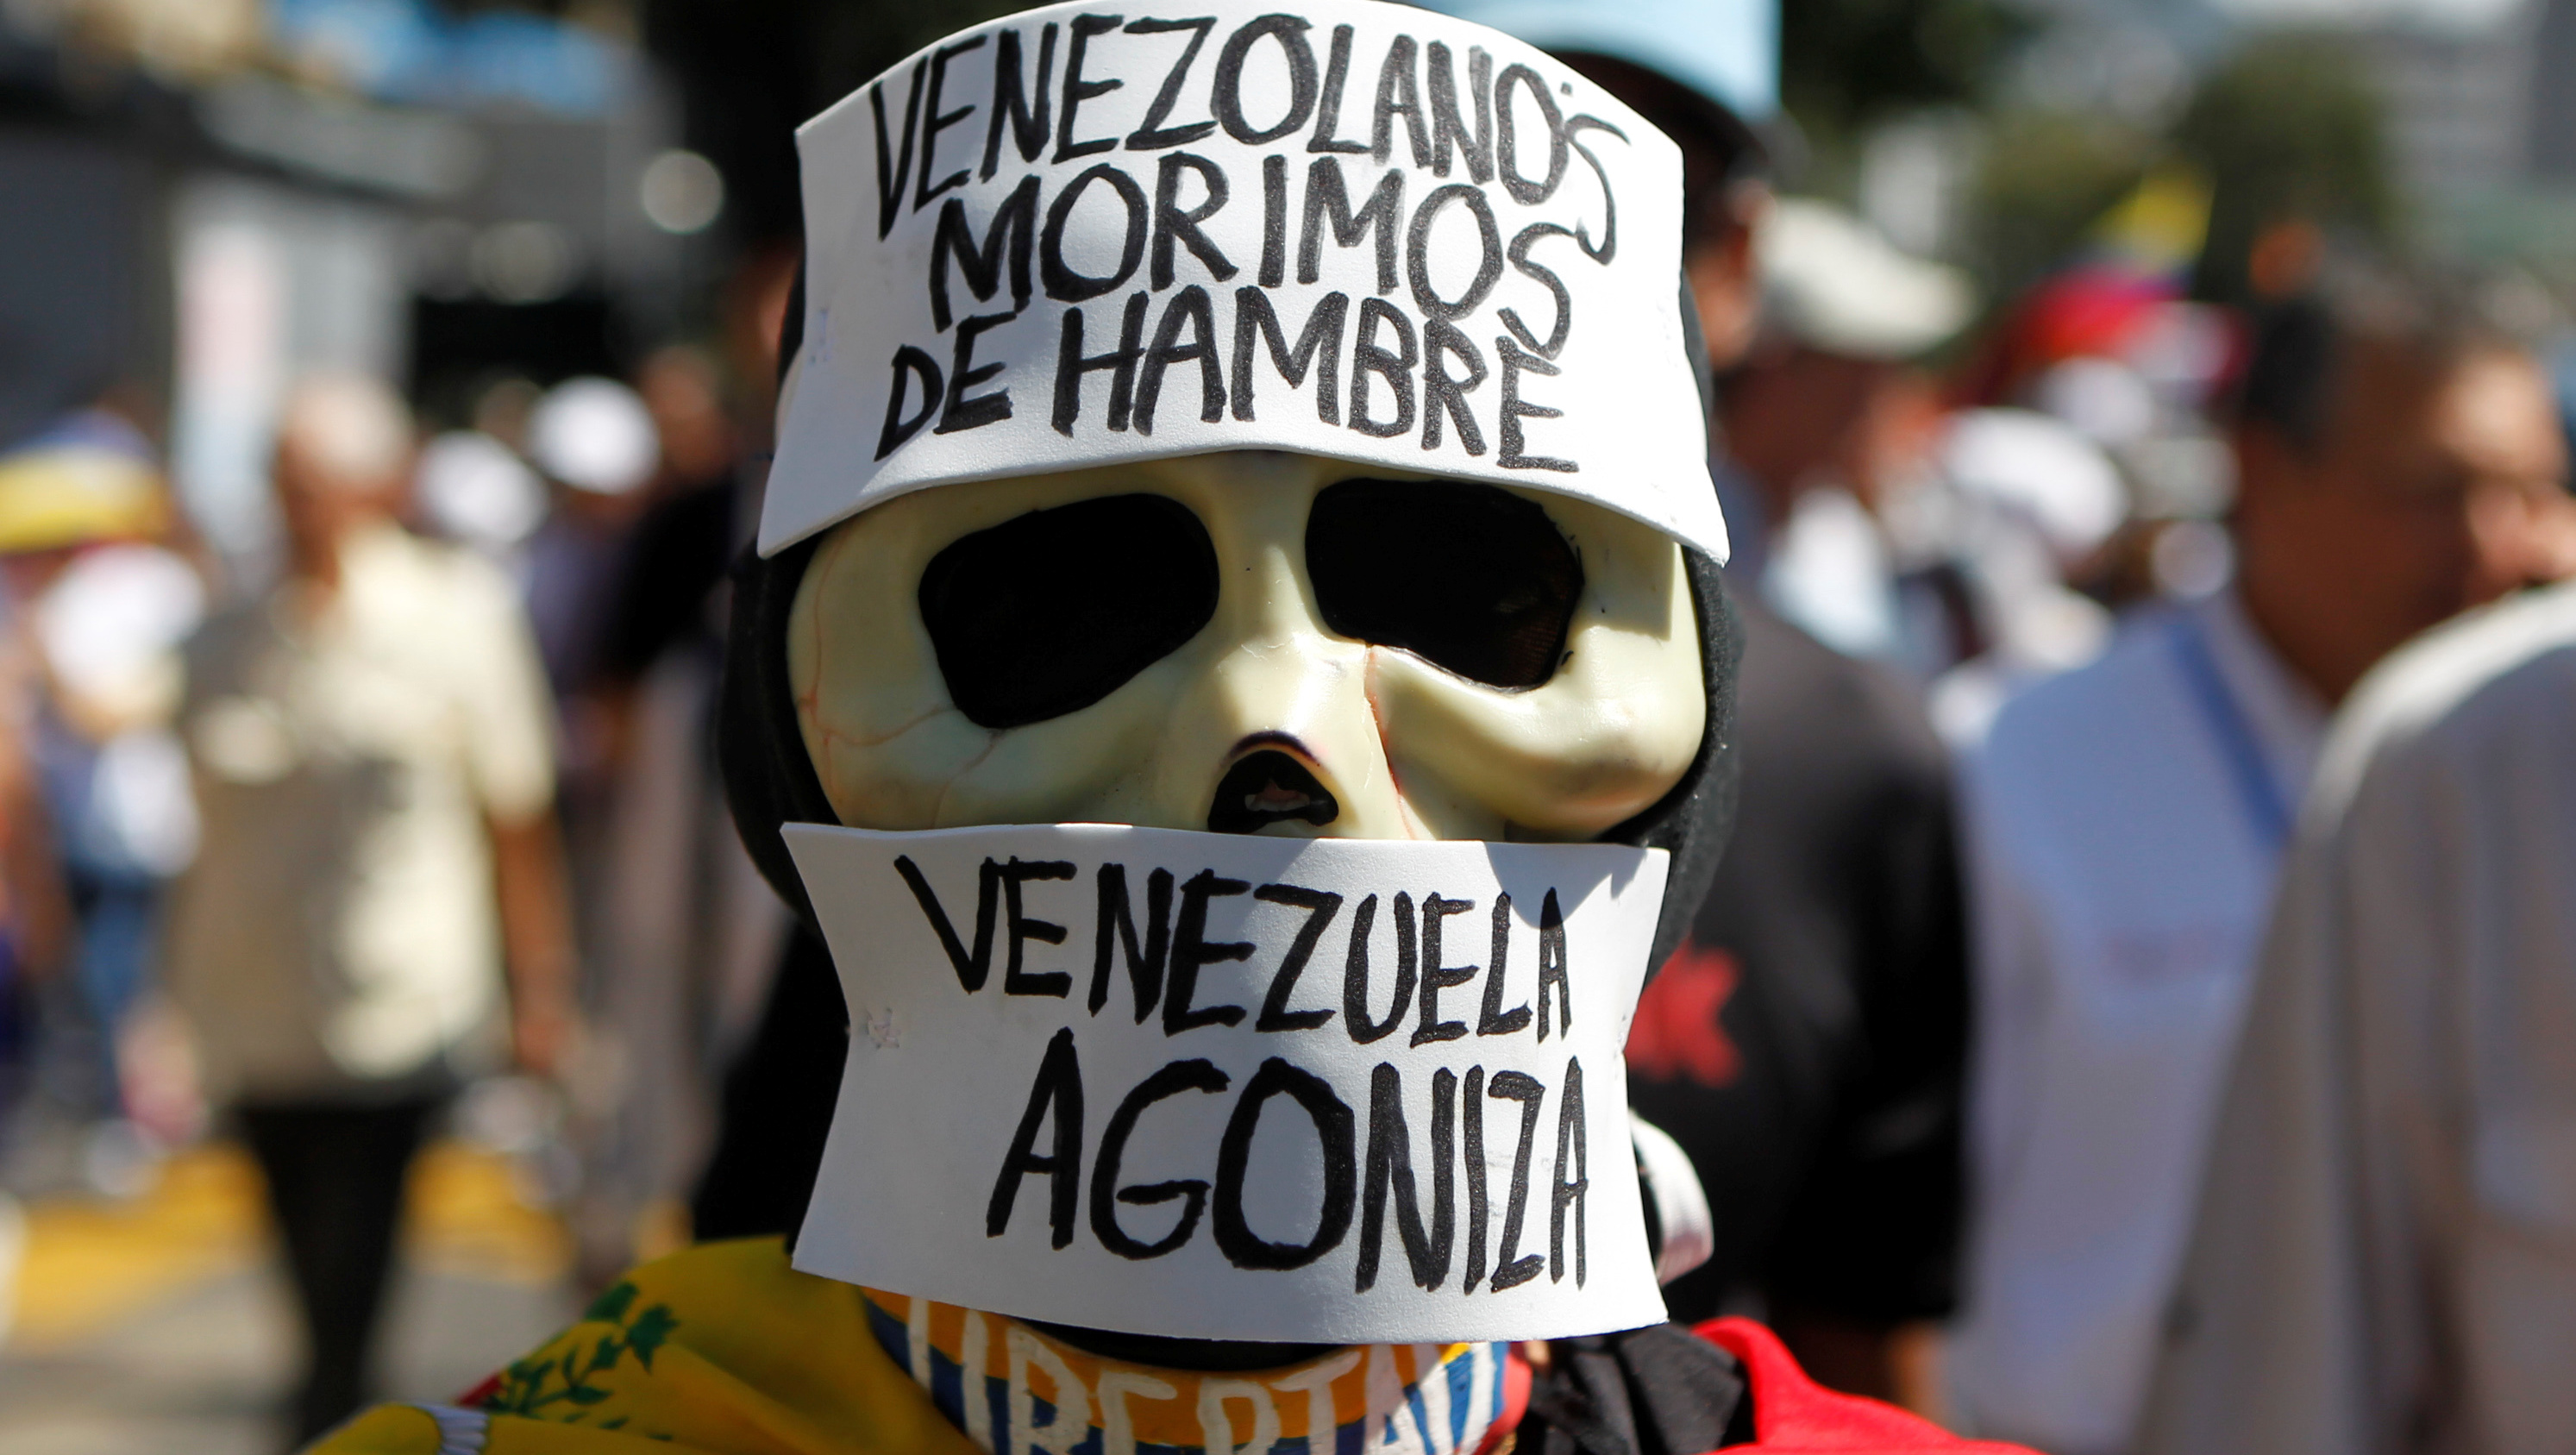 A man dressed in opposition to President Maduro of Venezuela wears a sign that says Venezuelans are starving.